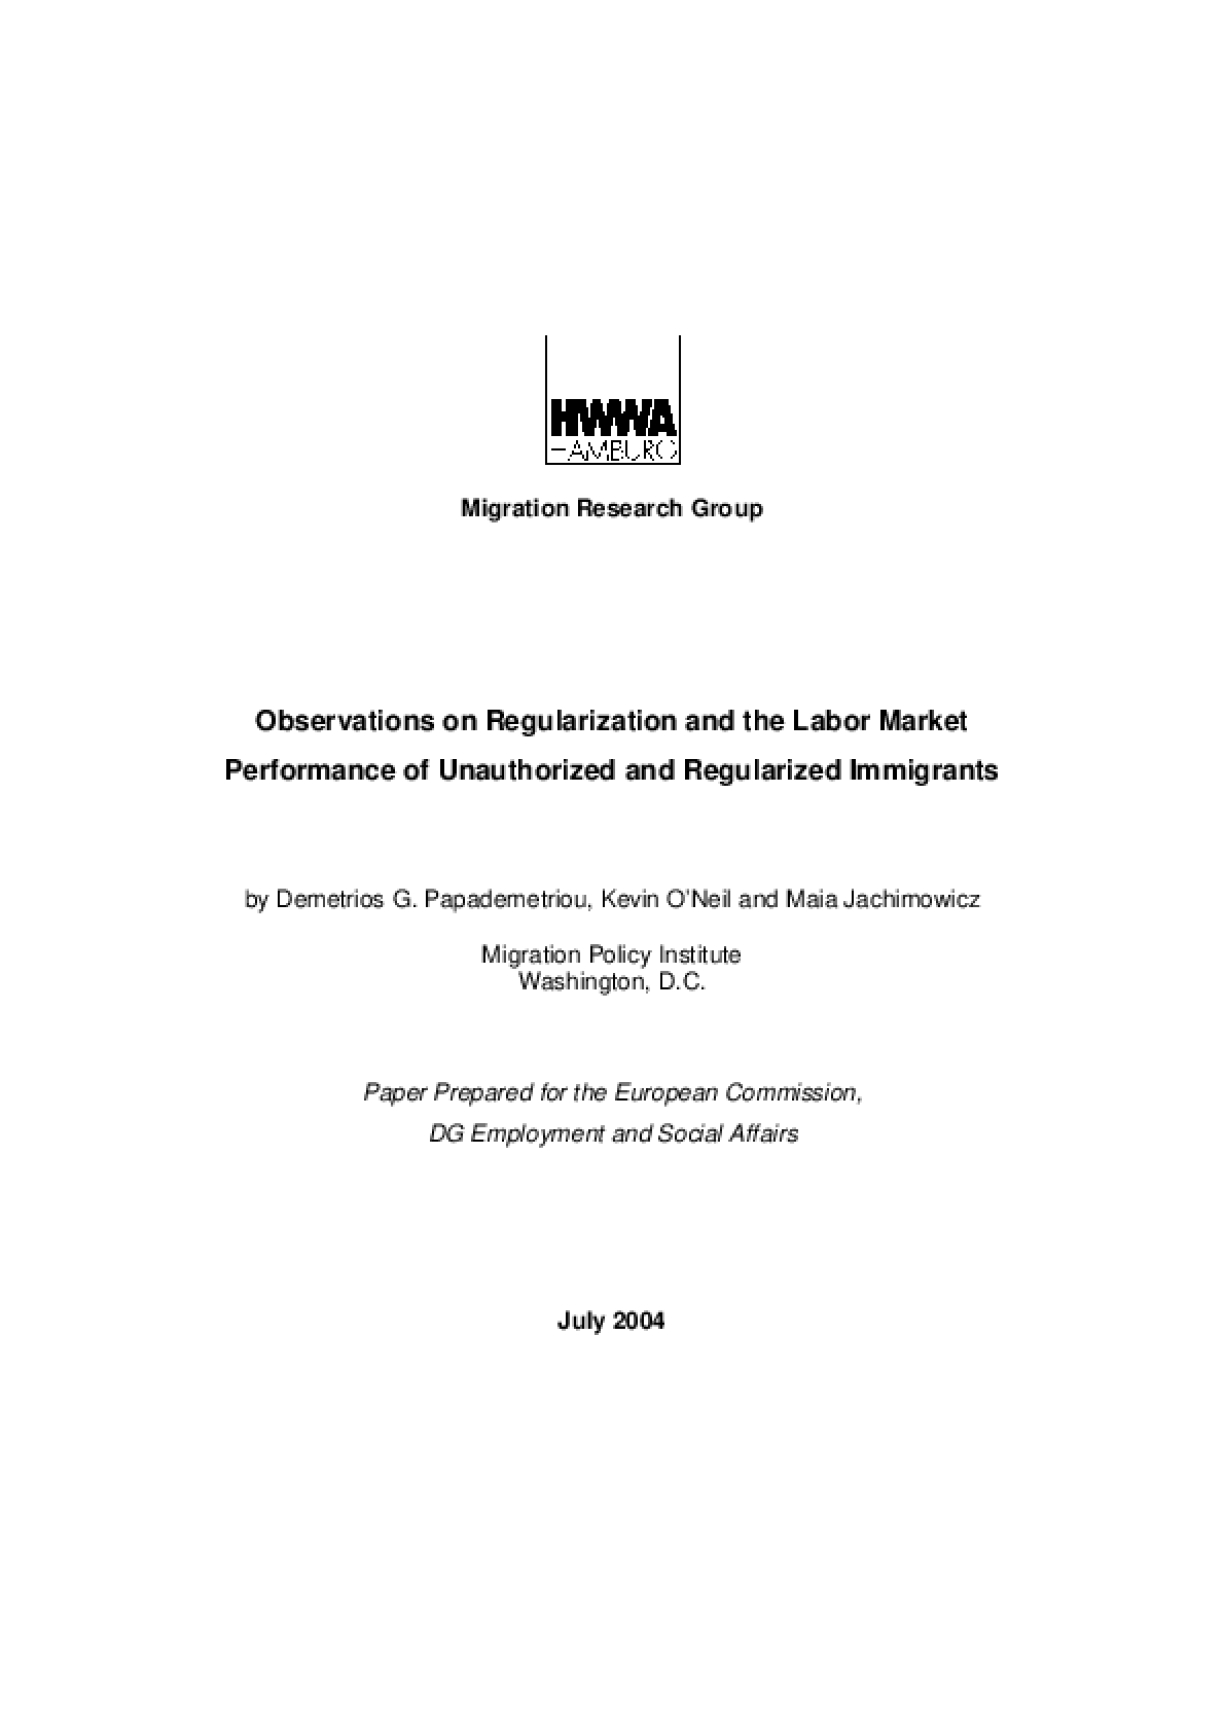 Observations on Regularization and the Labor Market Performance of Unauthorized and Regularized Immigrants